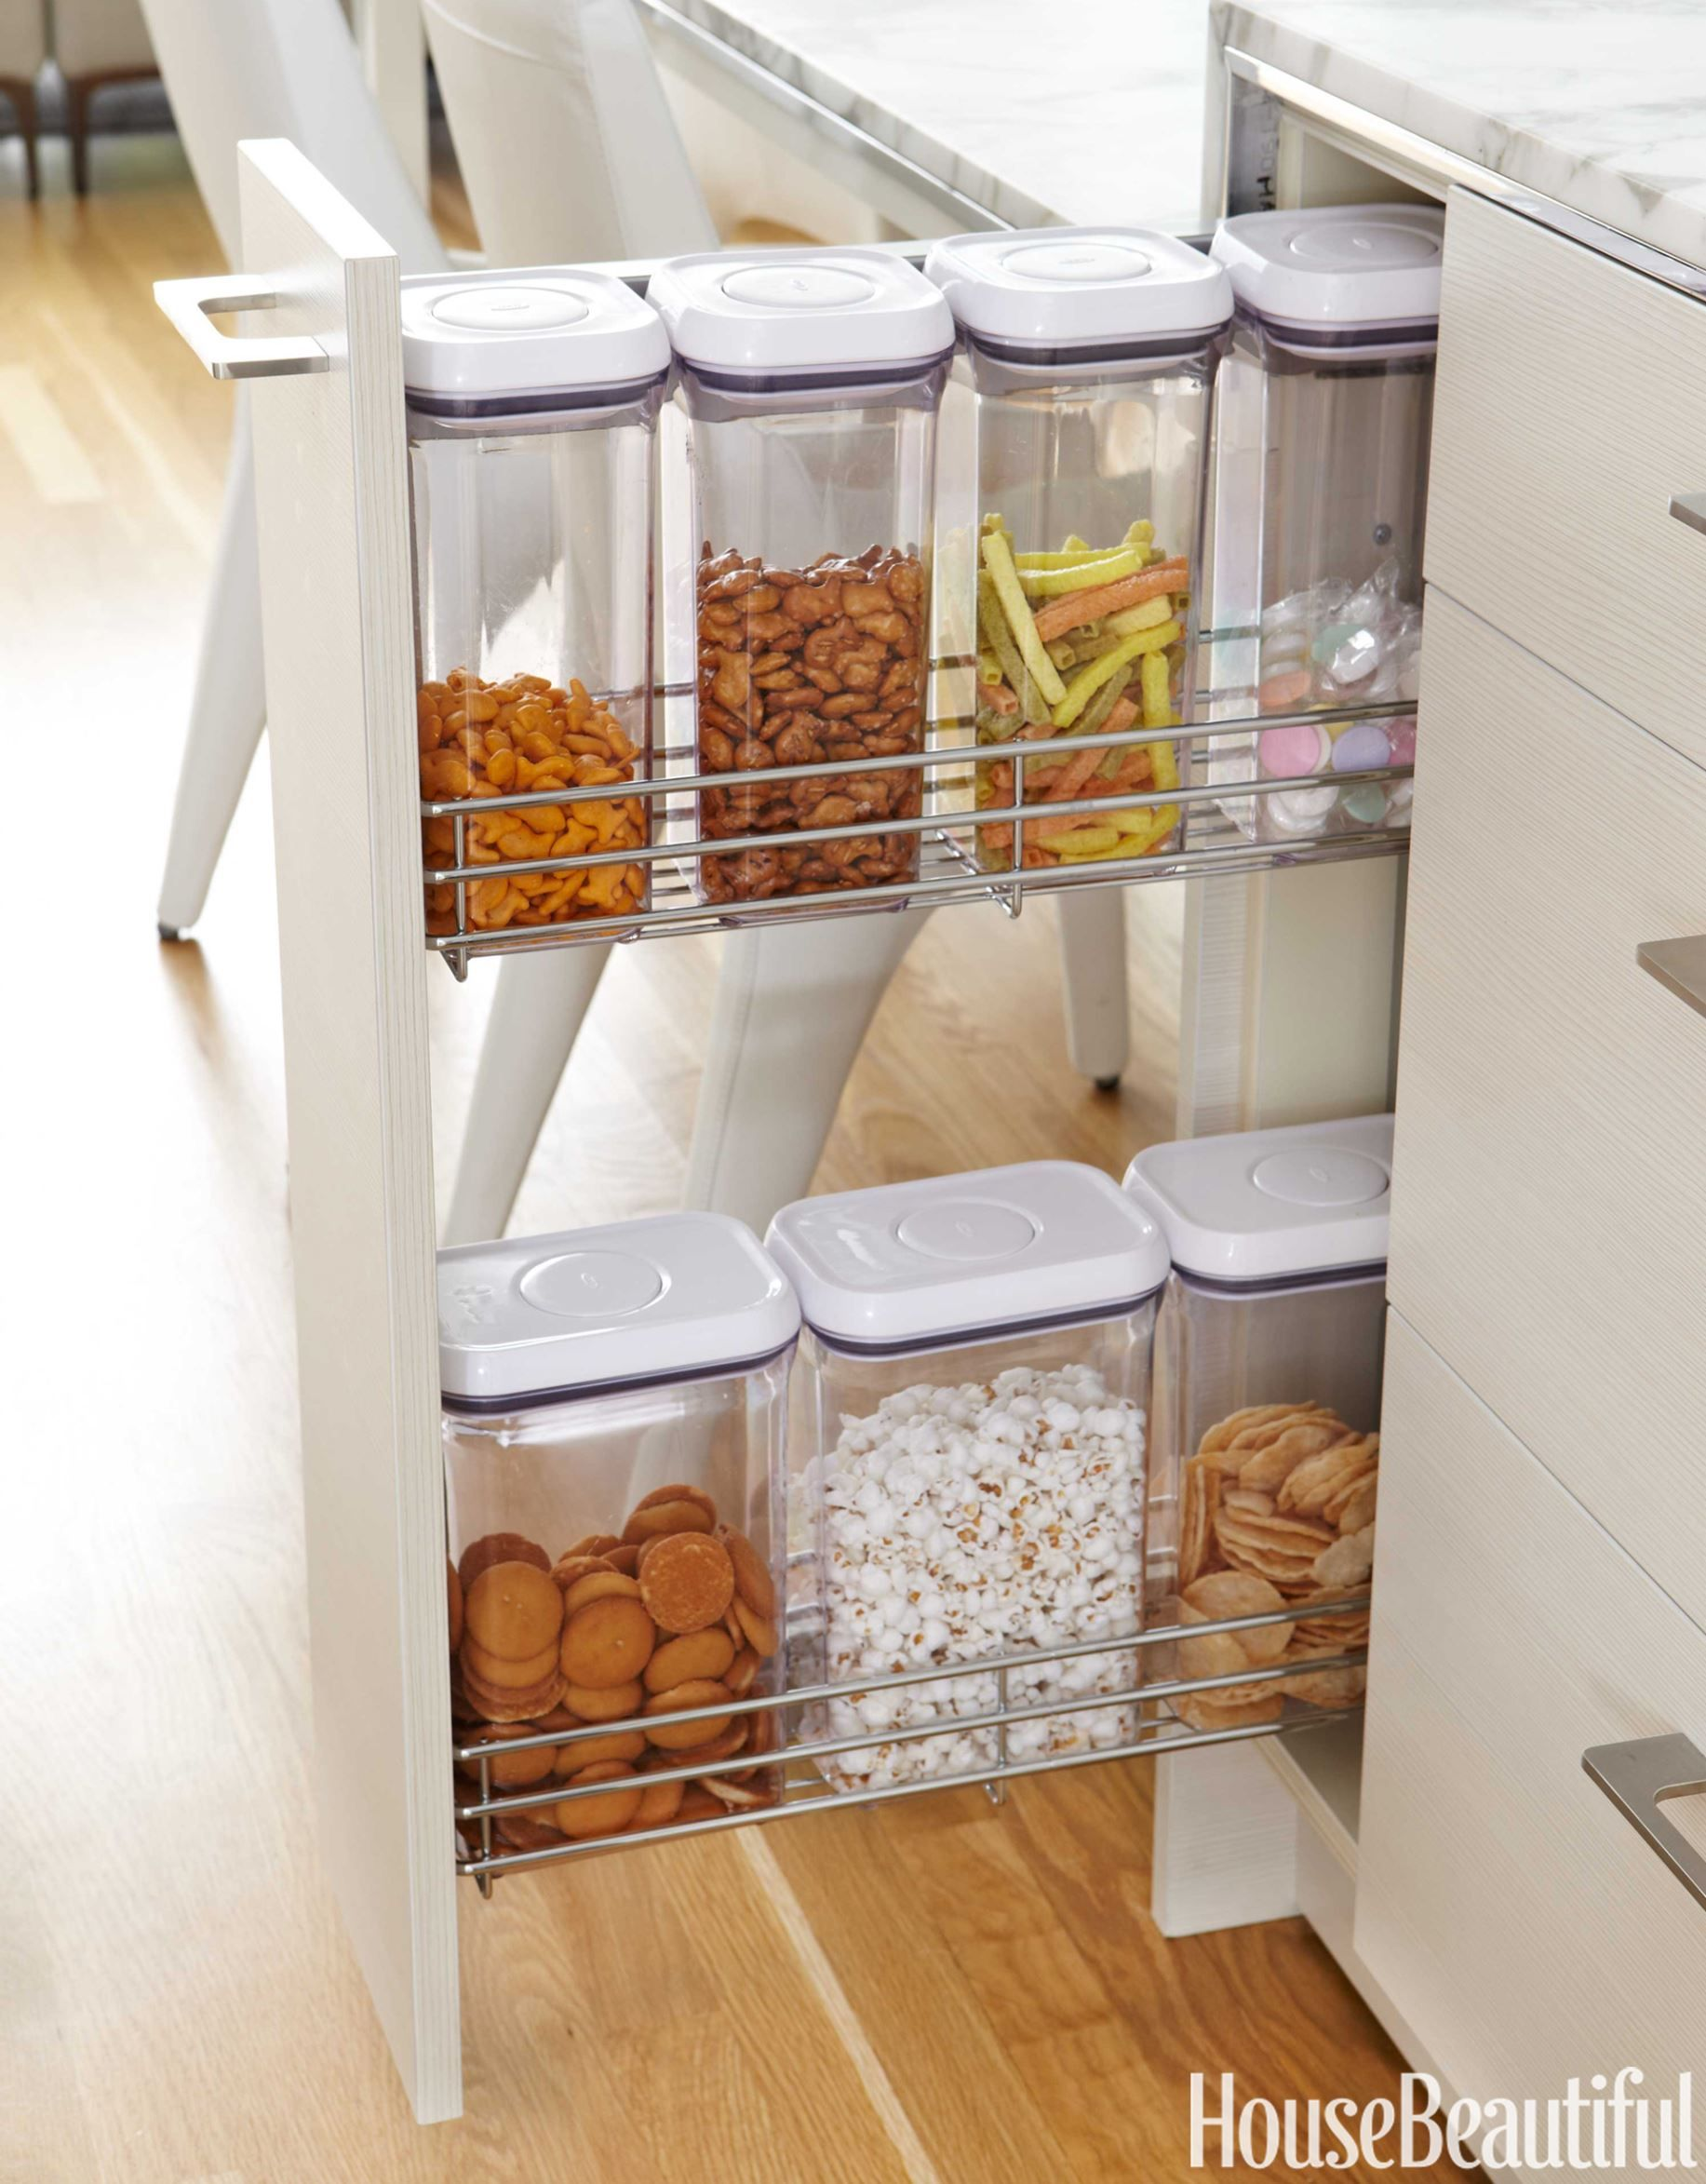 Tour an airy and bright kitchen kitchen pulls bright and storage jars